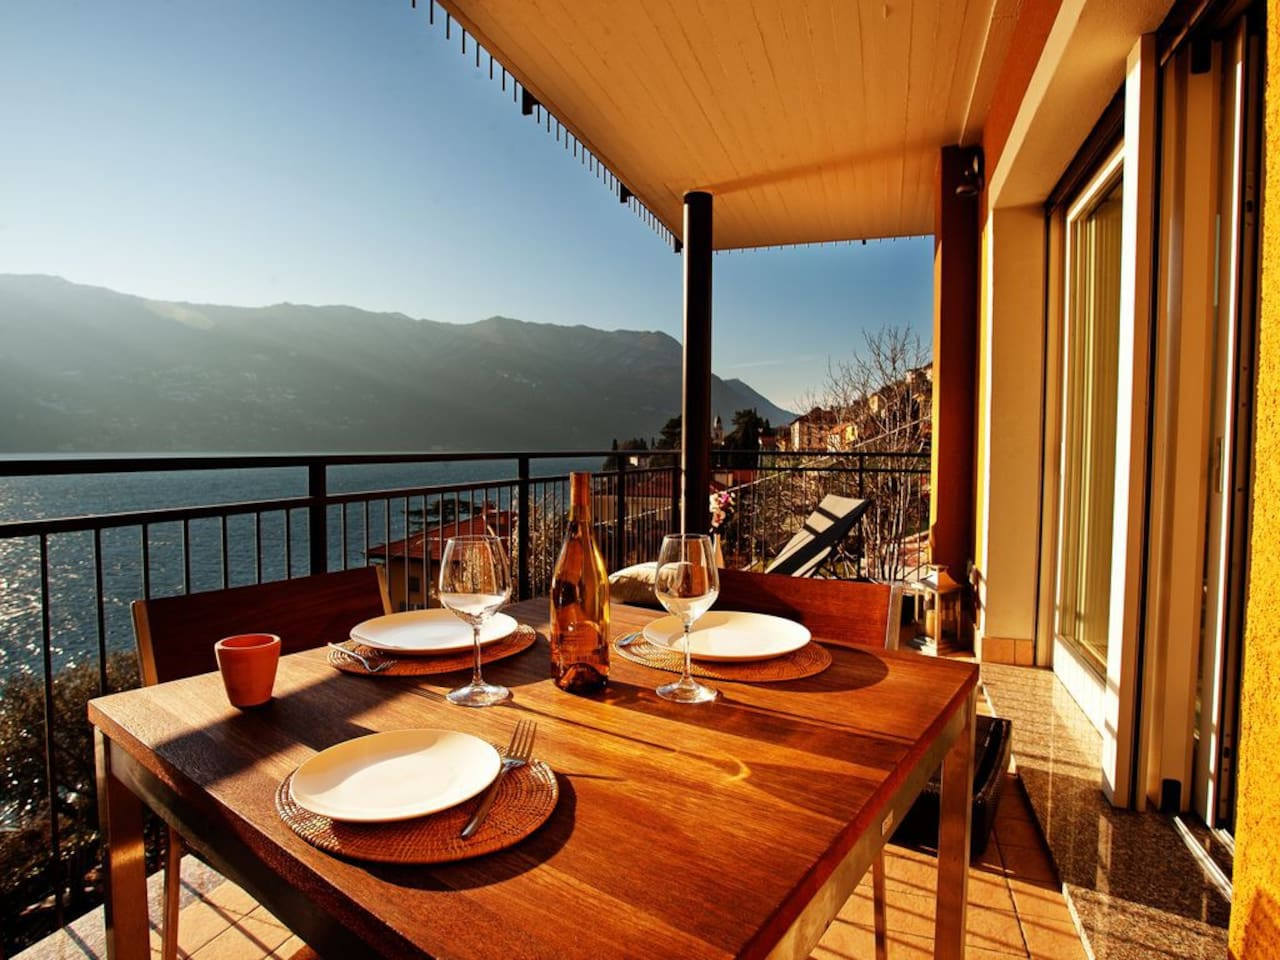 Dining with a view on your private balcony